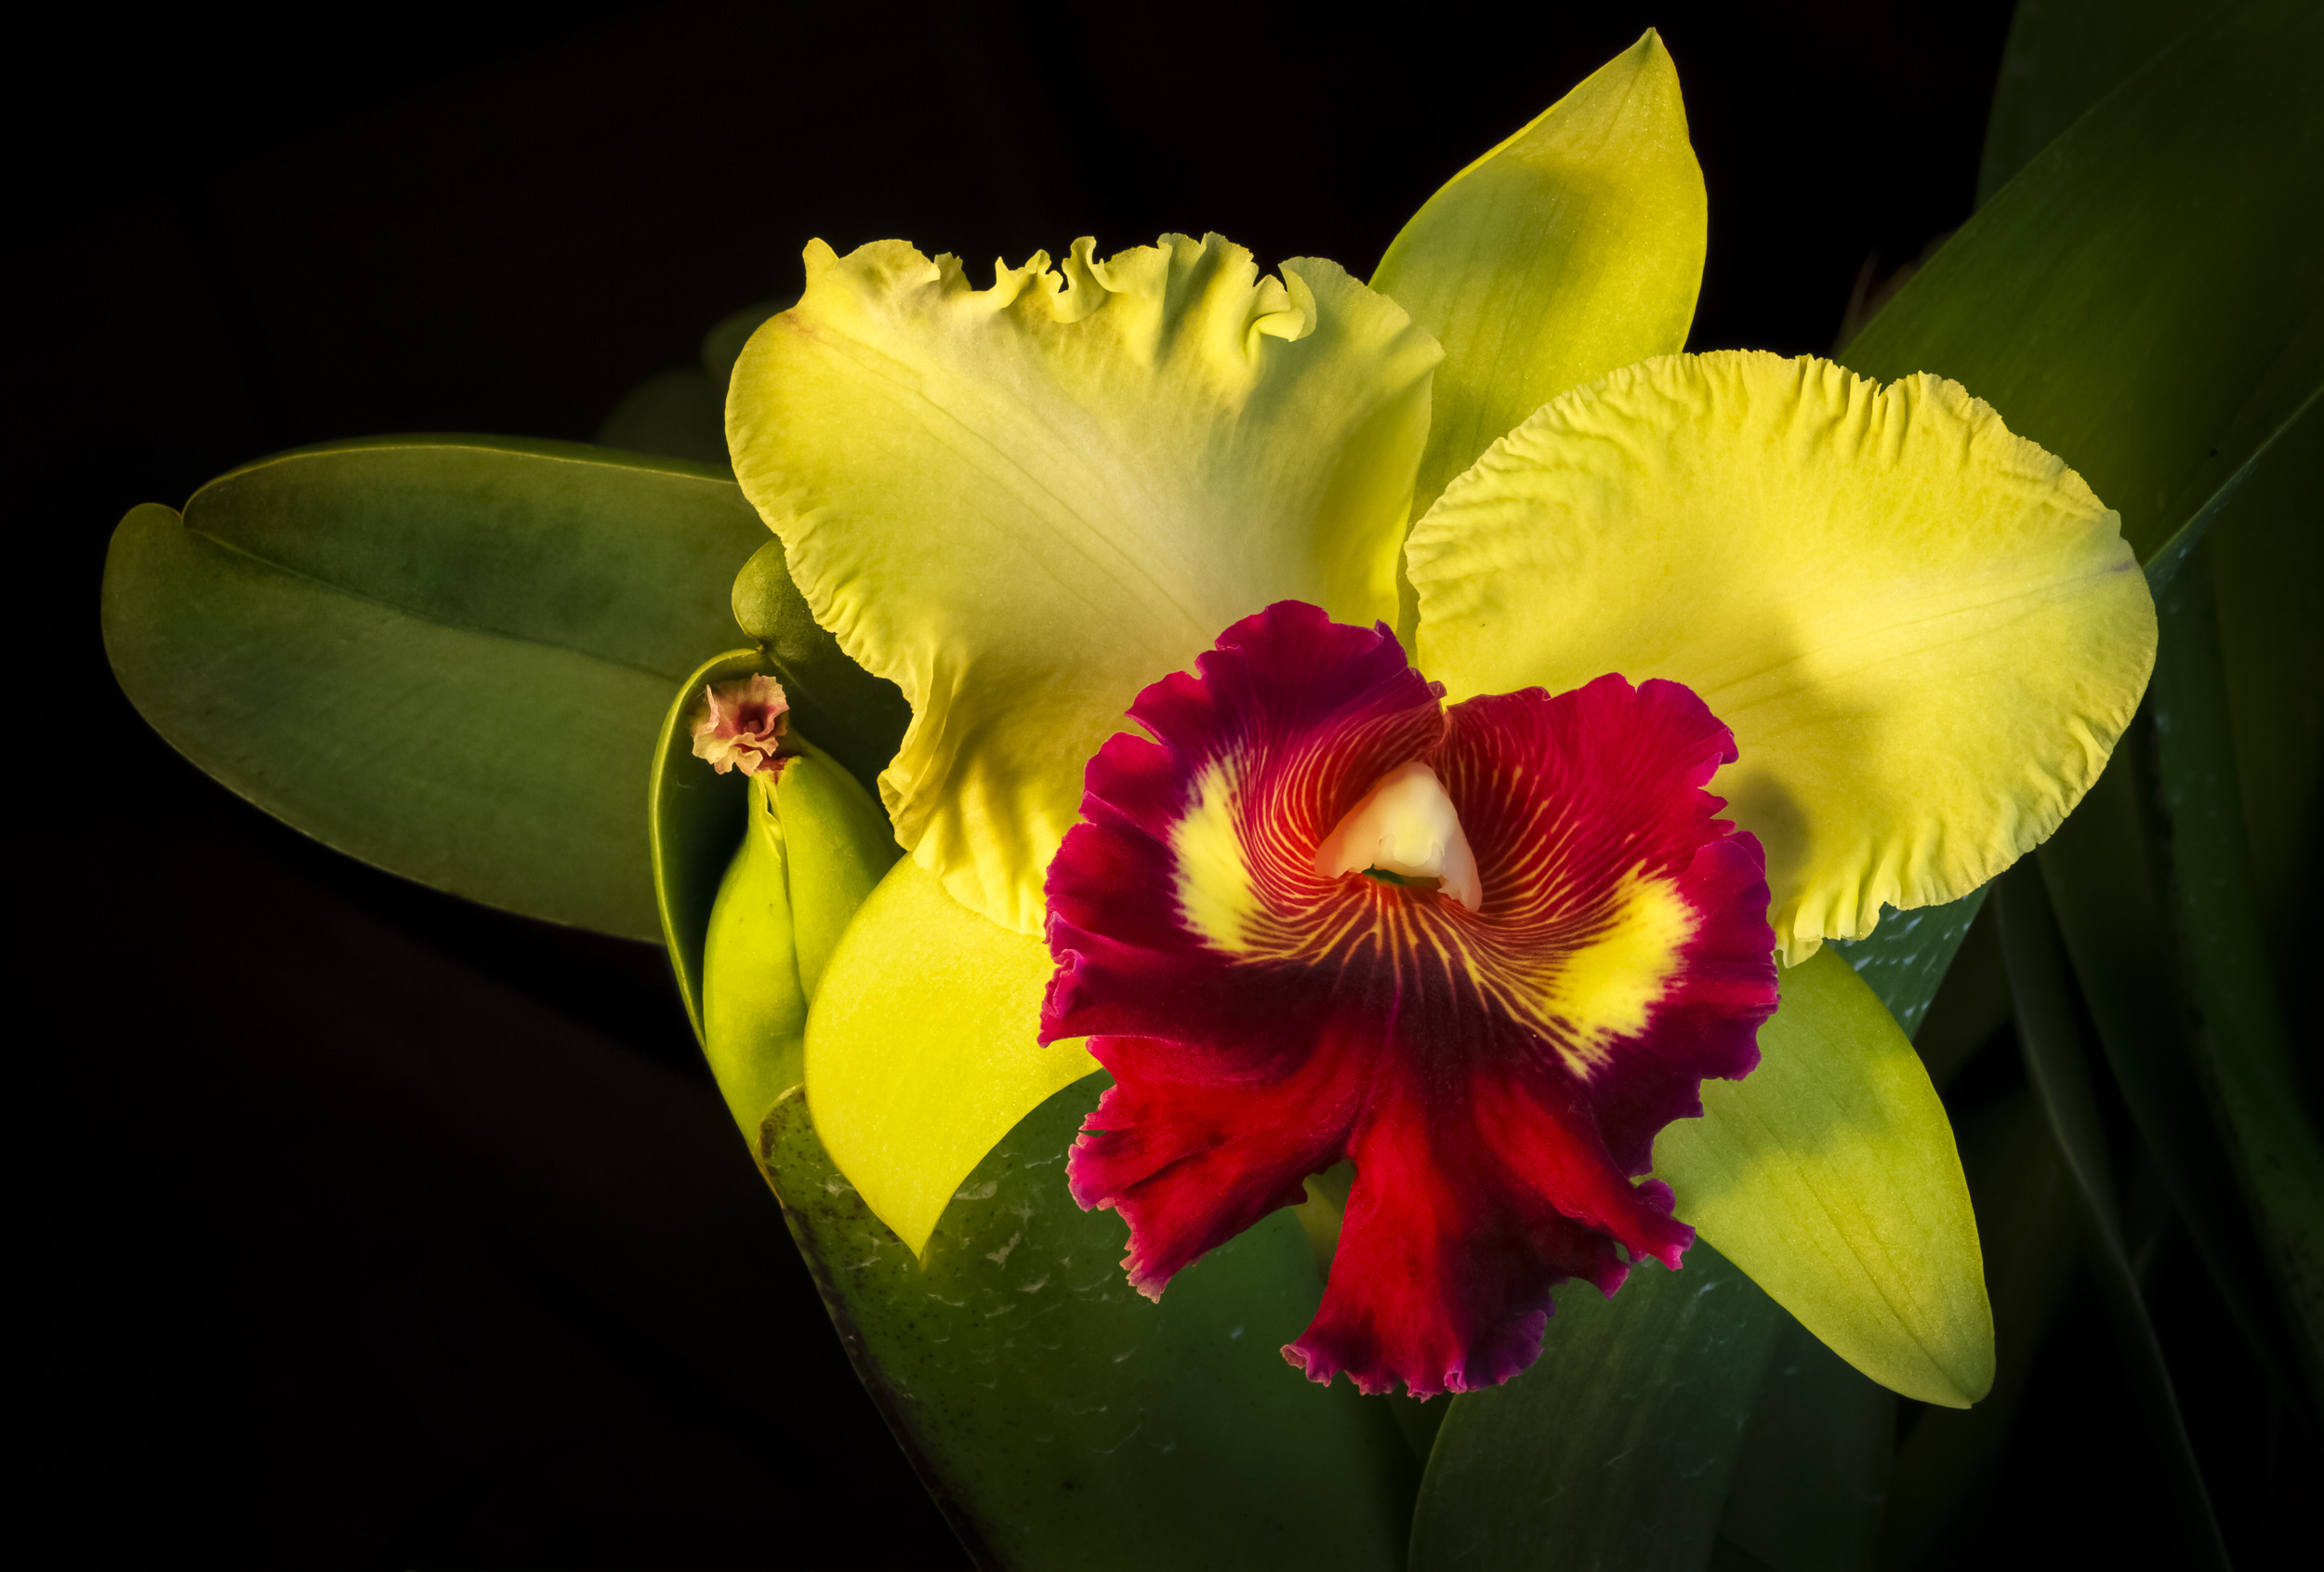 Blc Willette Wong